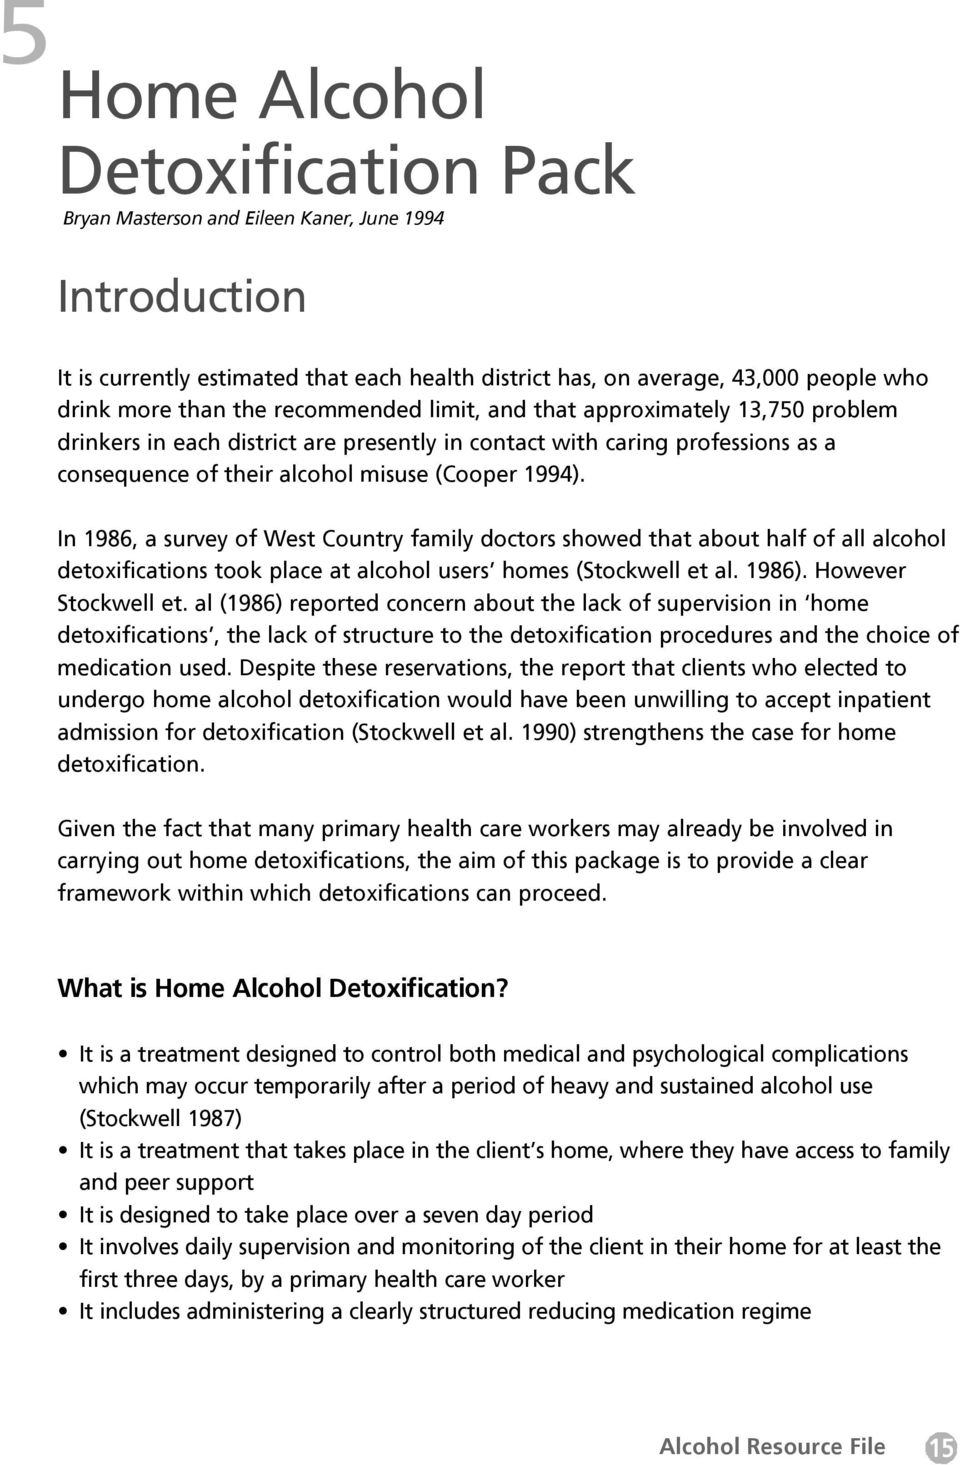 In 1986, a survey of West Country family doctors showed that about half of all alcohol detoxifications took place at alcohol users homes (Stockwell et al. 1986). However Stockwell et.